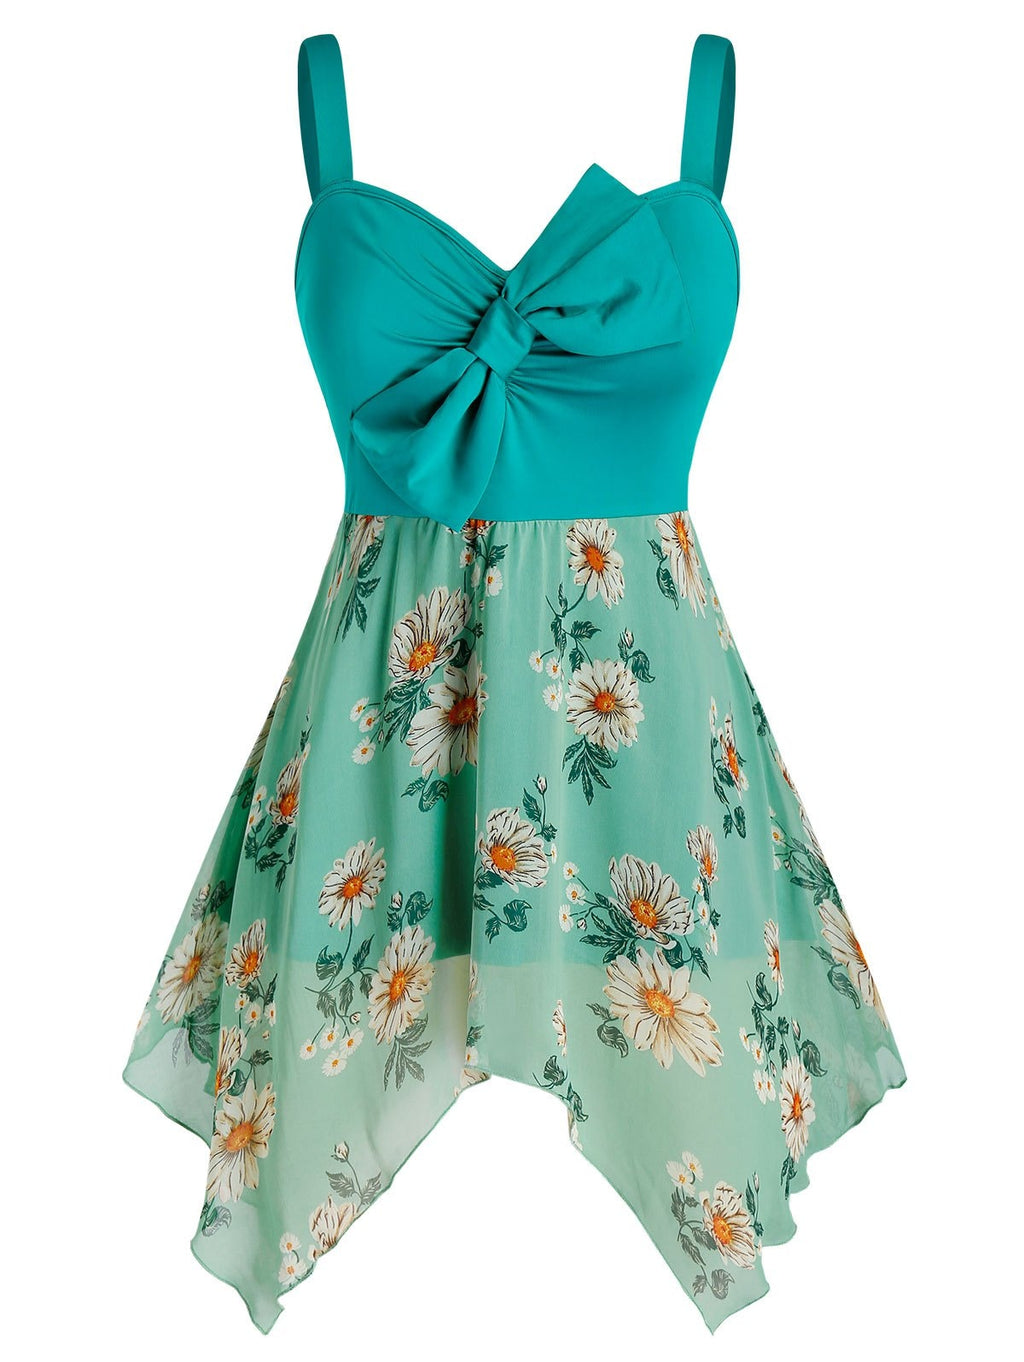 Plus Size Bowknot Flower Print Handkerchief Backless Tank Top